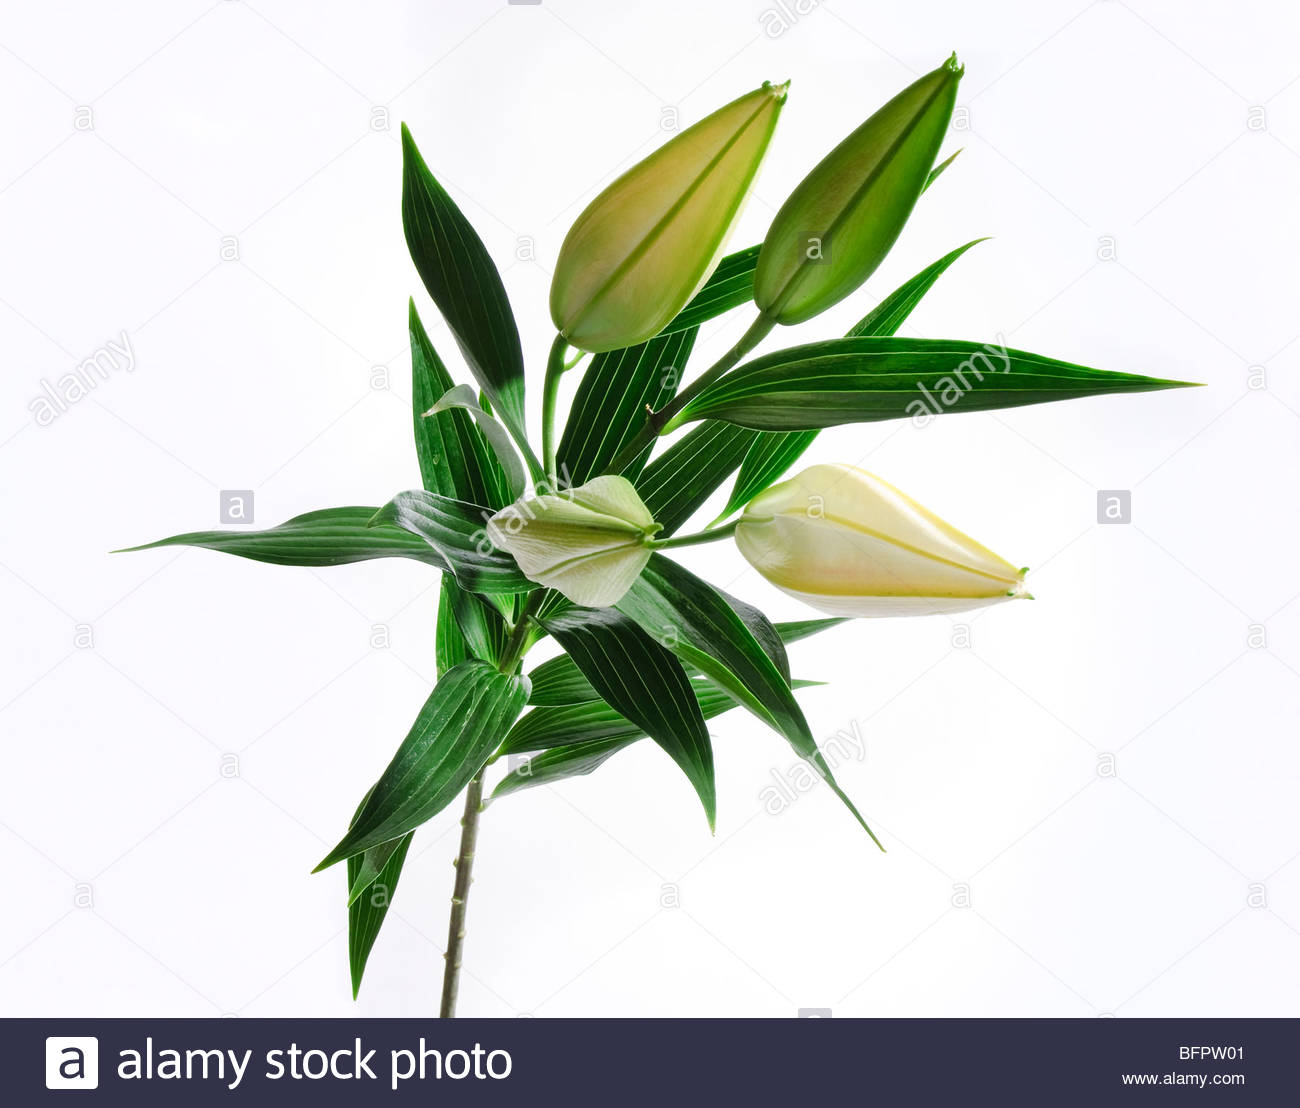 Lily buds and stems - Stock Image